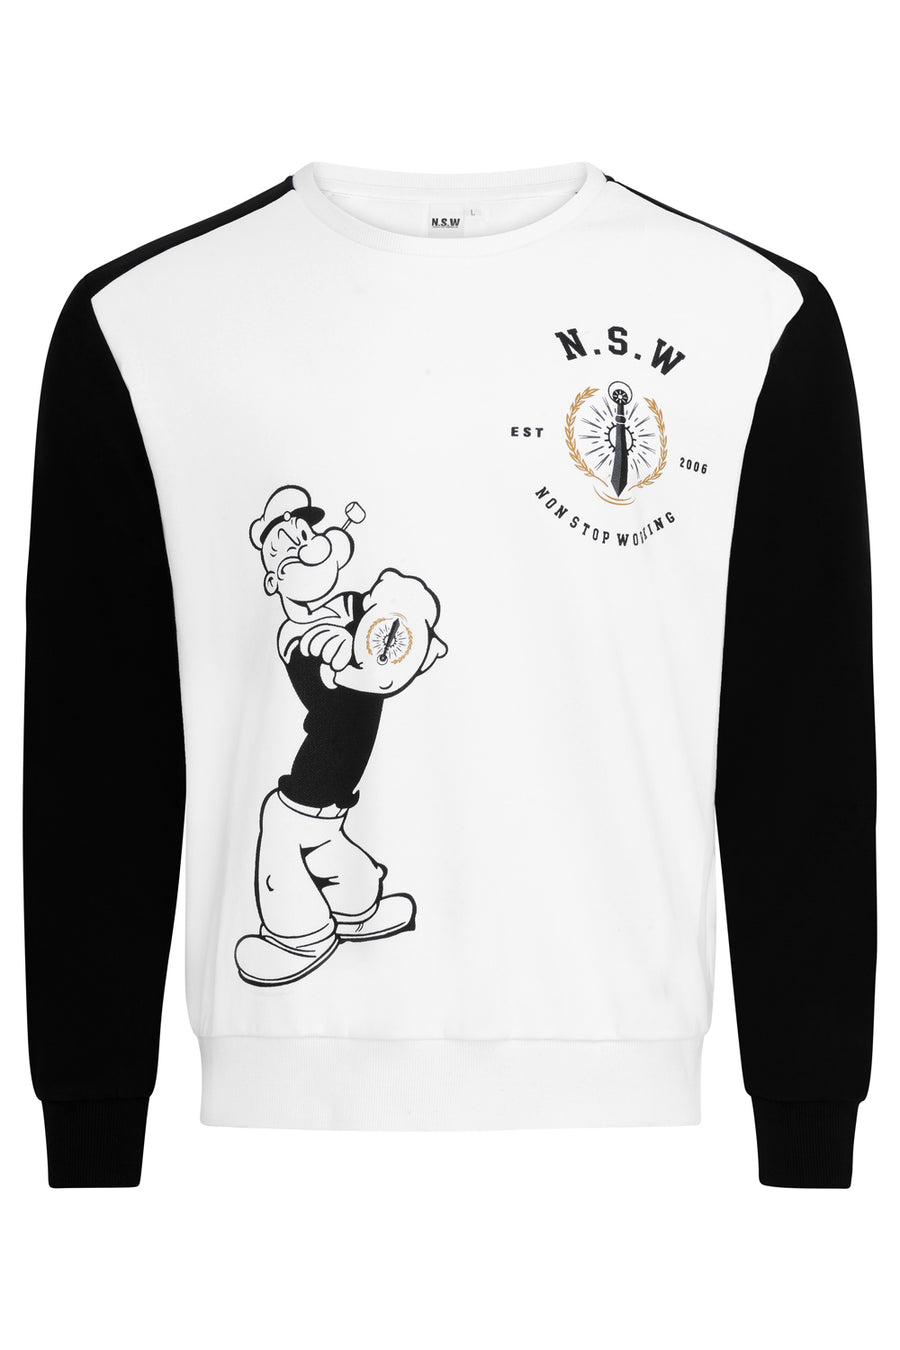 NON STOP WORKING ANIMATED SWEATSHIRT *LIMITED EDITION*